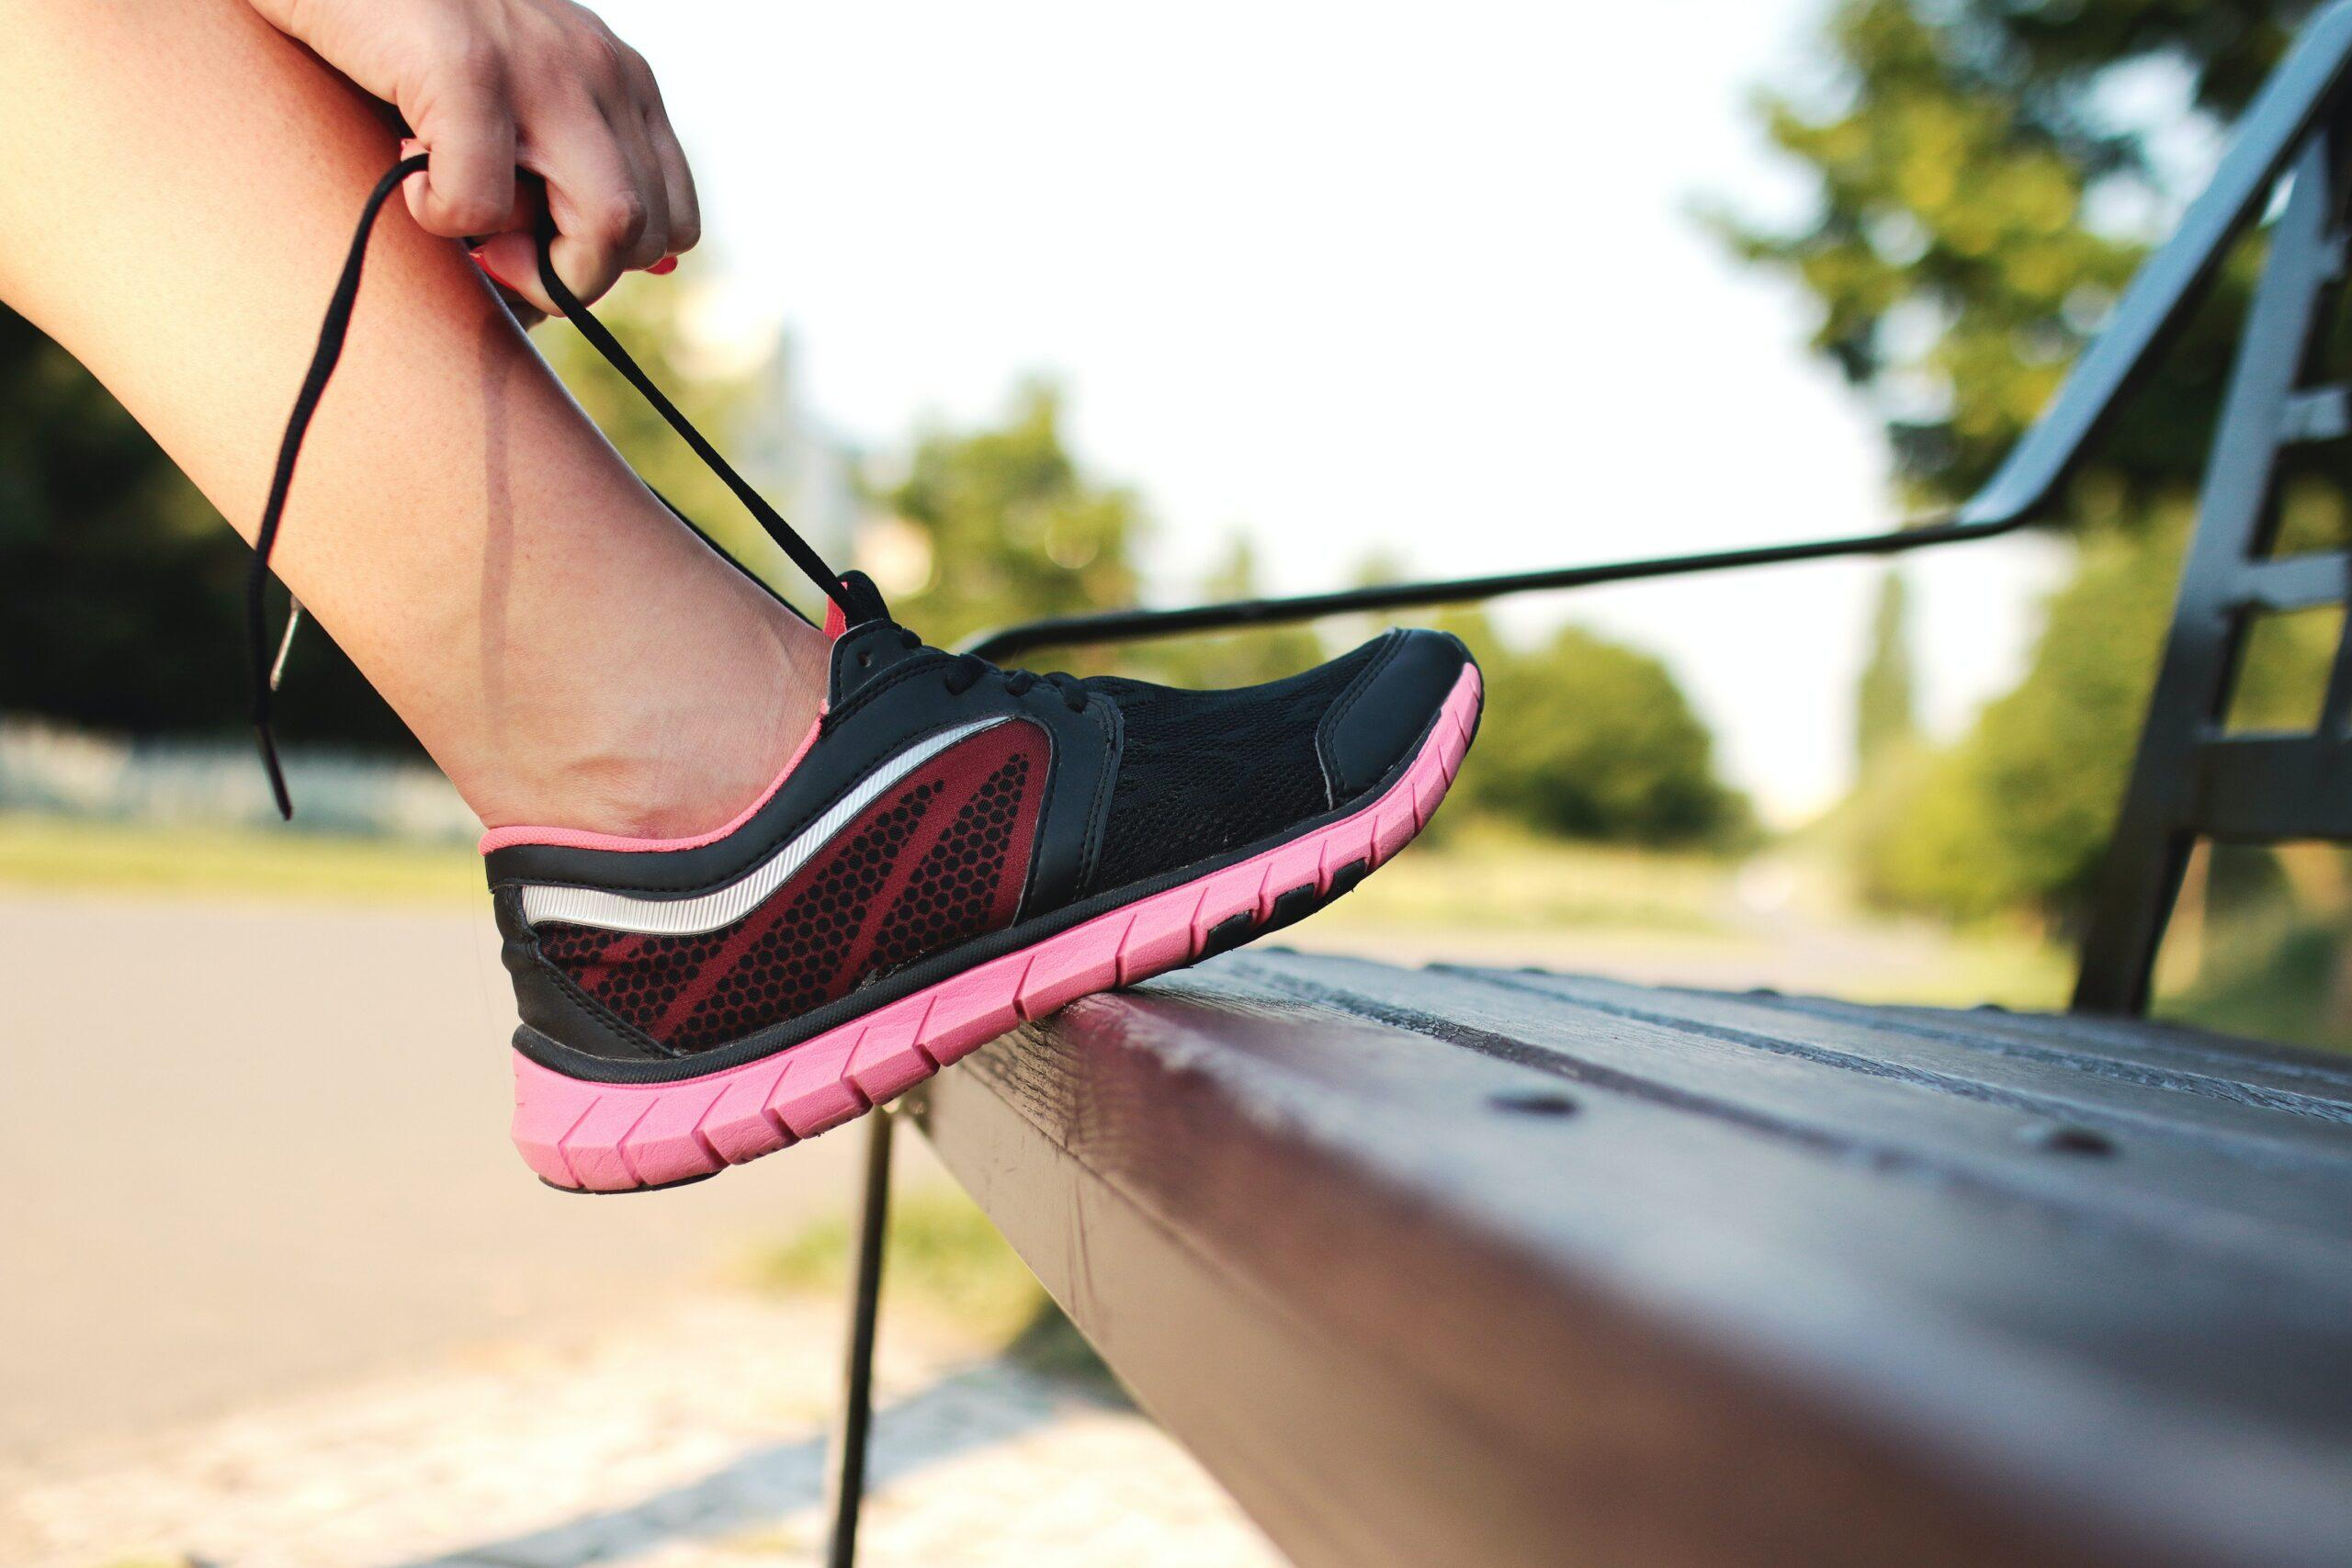 Private GPs' Tips on Getting Fit and Improving Wellbeing Post-Lockdown